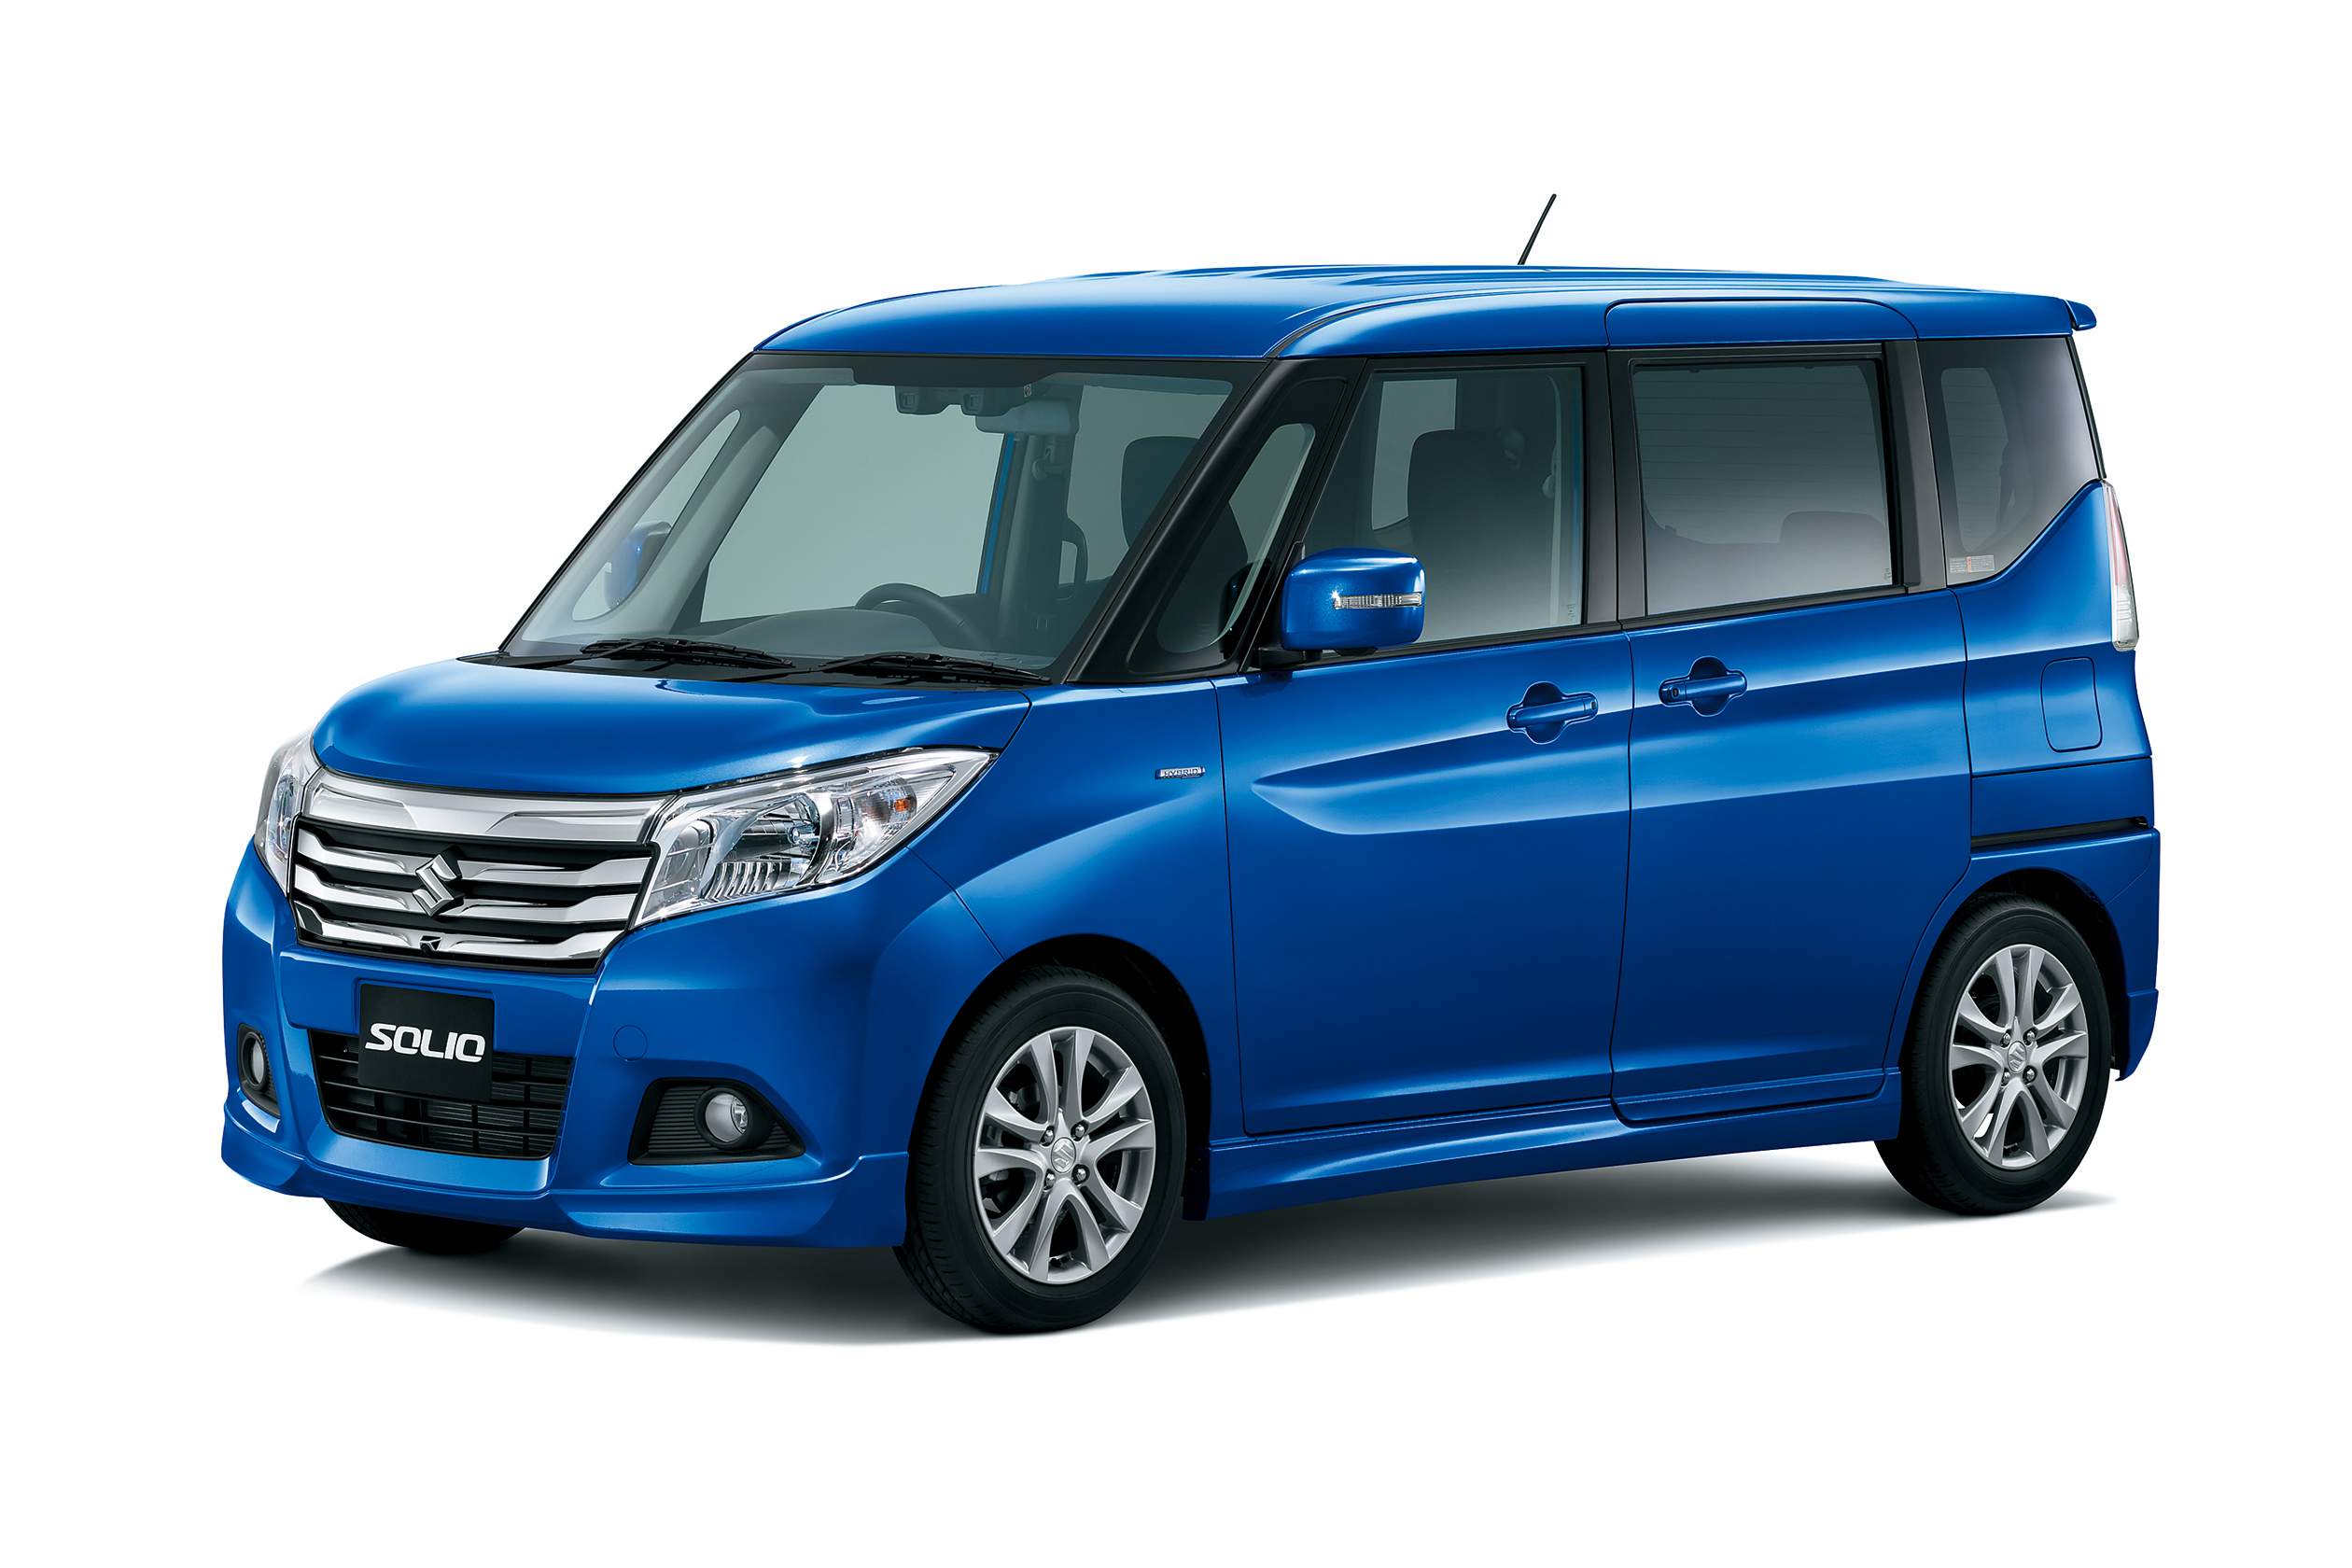 Suzuki solio photo - 3